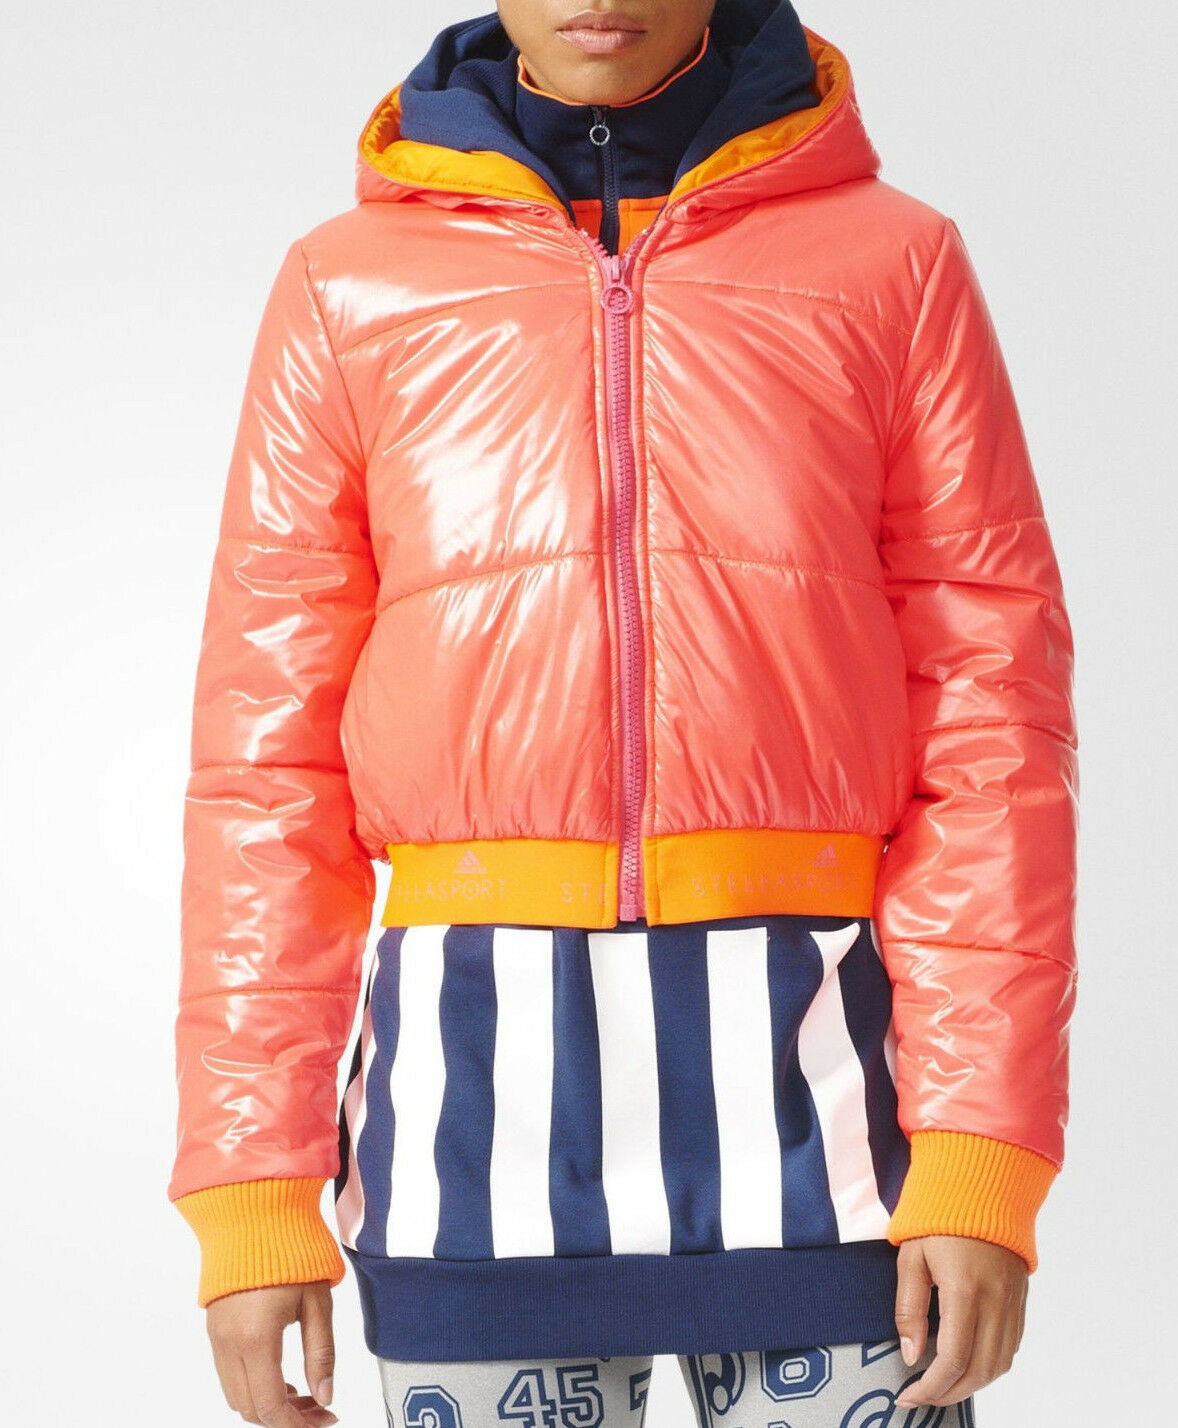 ADIDAS STELLASPORT WARM PADDED PUFFER JACKET RED/ORANGE M SOLAR RED/ORANGE JACKET $150 NEW W/TAGS da90ec